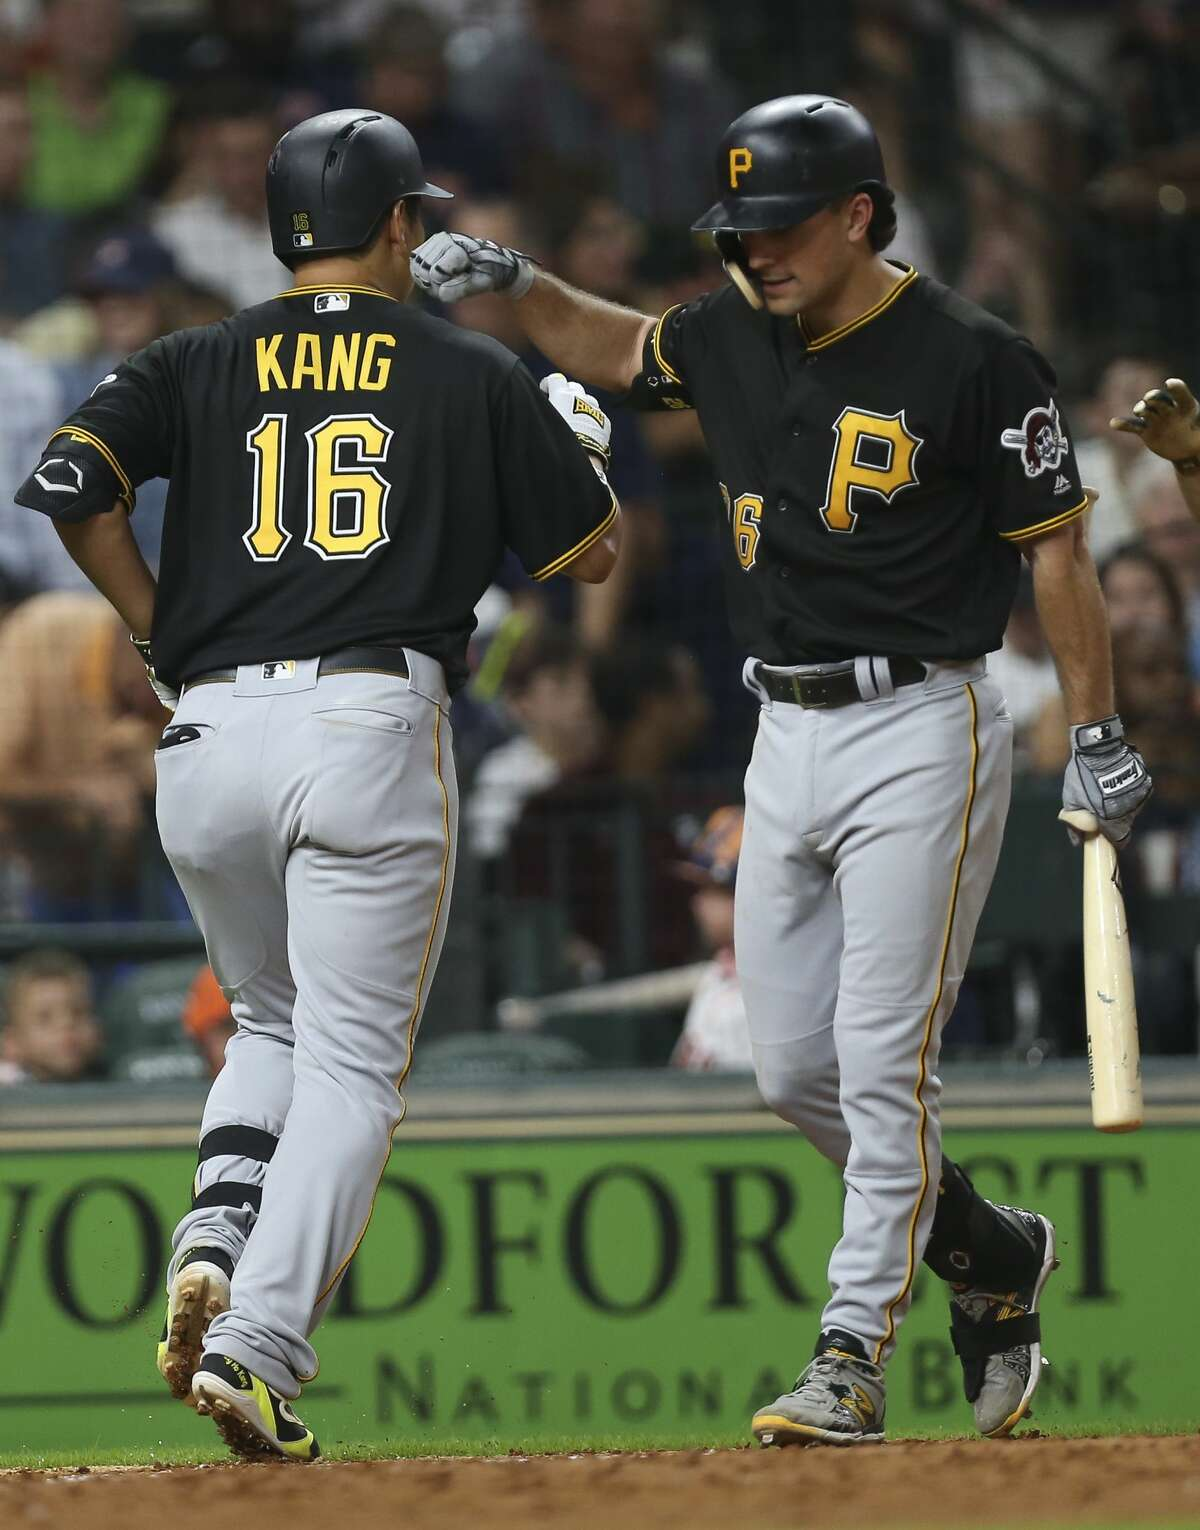 Pittsburgh Pirates third baseman Jung Ho Kang (16) is congratulated by Adam Frazier (26) after his two-run home run during the top sixth inning of the MLB game against the Houston Astros at Minute Maid Park on Wednesday, June 26, 2019, in Houston.